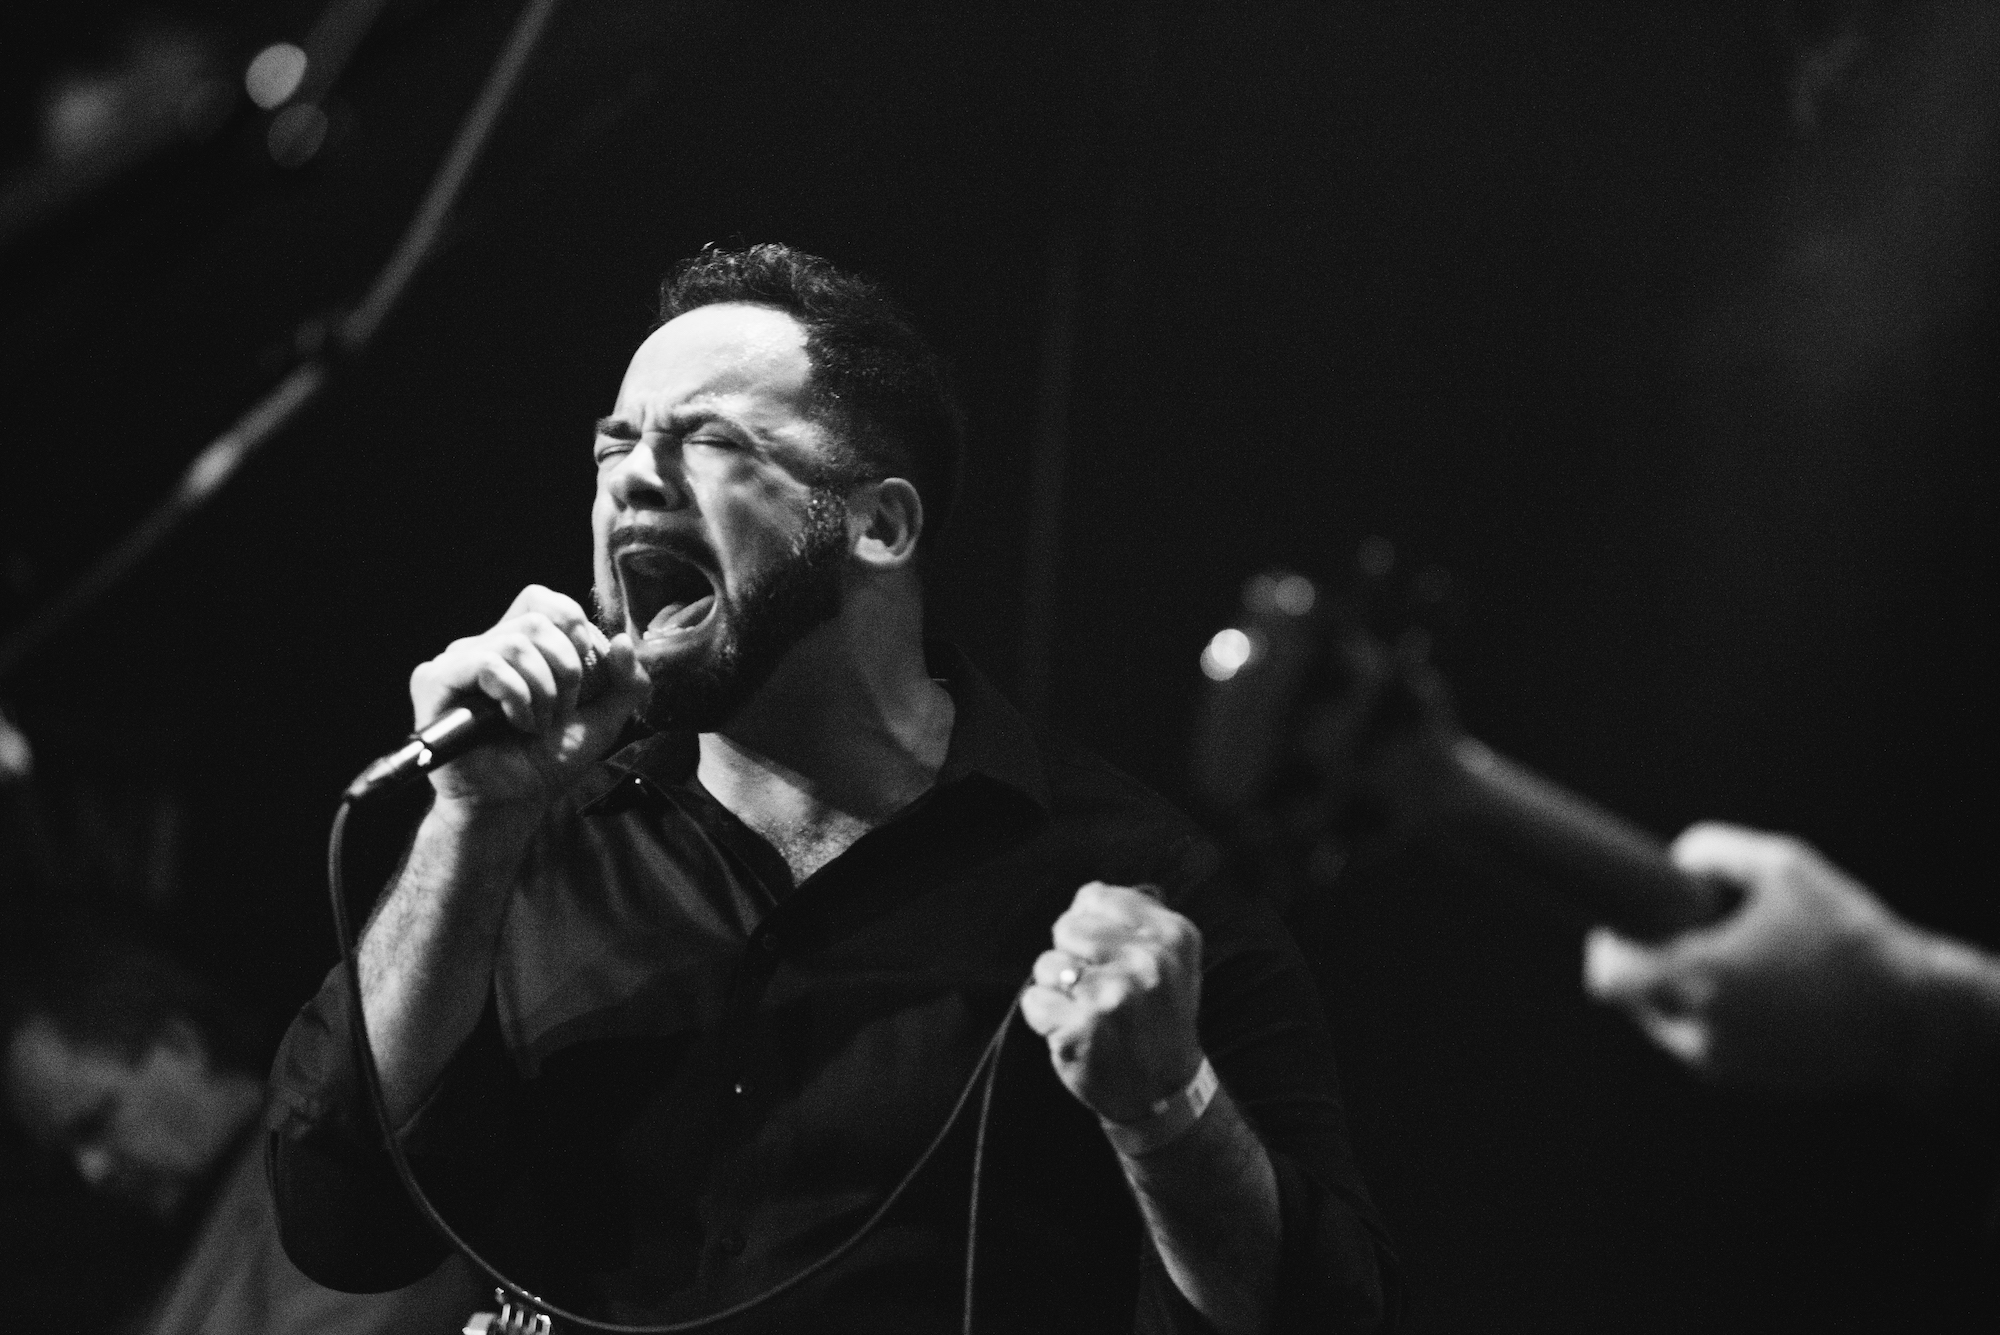 The lead singer of Hostile Witness (Case Knowlson; Norton Rose Fulbright) puts his soul into it at Law Rocks Los Angeles. The band rocked the Whisky to benefit United Cerebral Palsy of Los Angeles, Ventura, and Santa Barbara Counties.